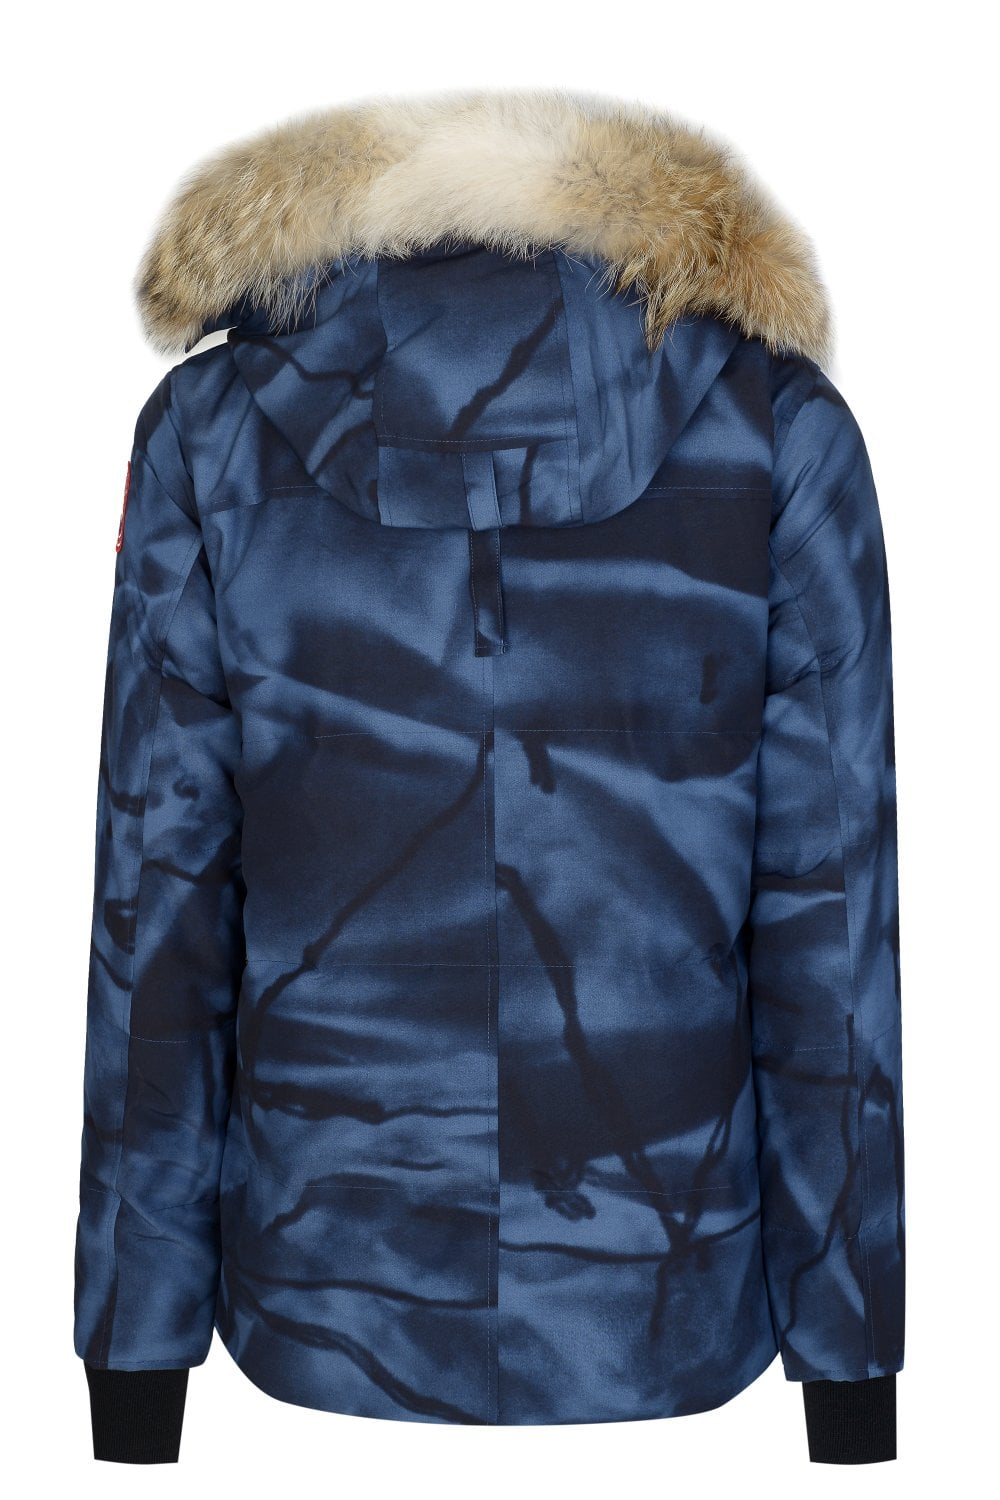 6887ef95a0f CANADA GOOSE Canada Goose Blue Wyndham Parka Coat - Clothing from ...